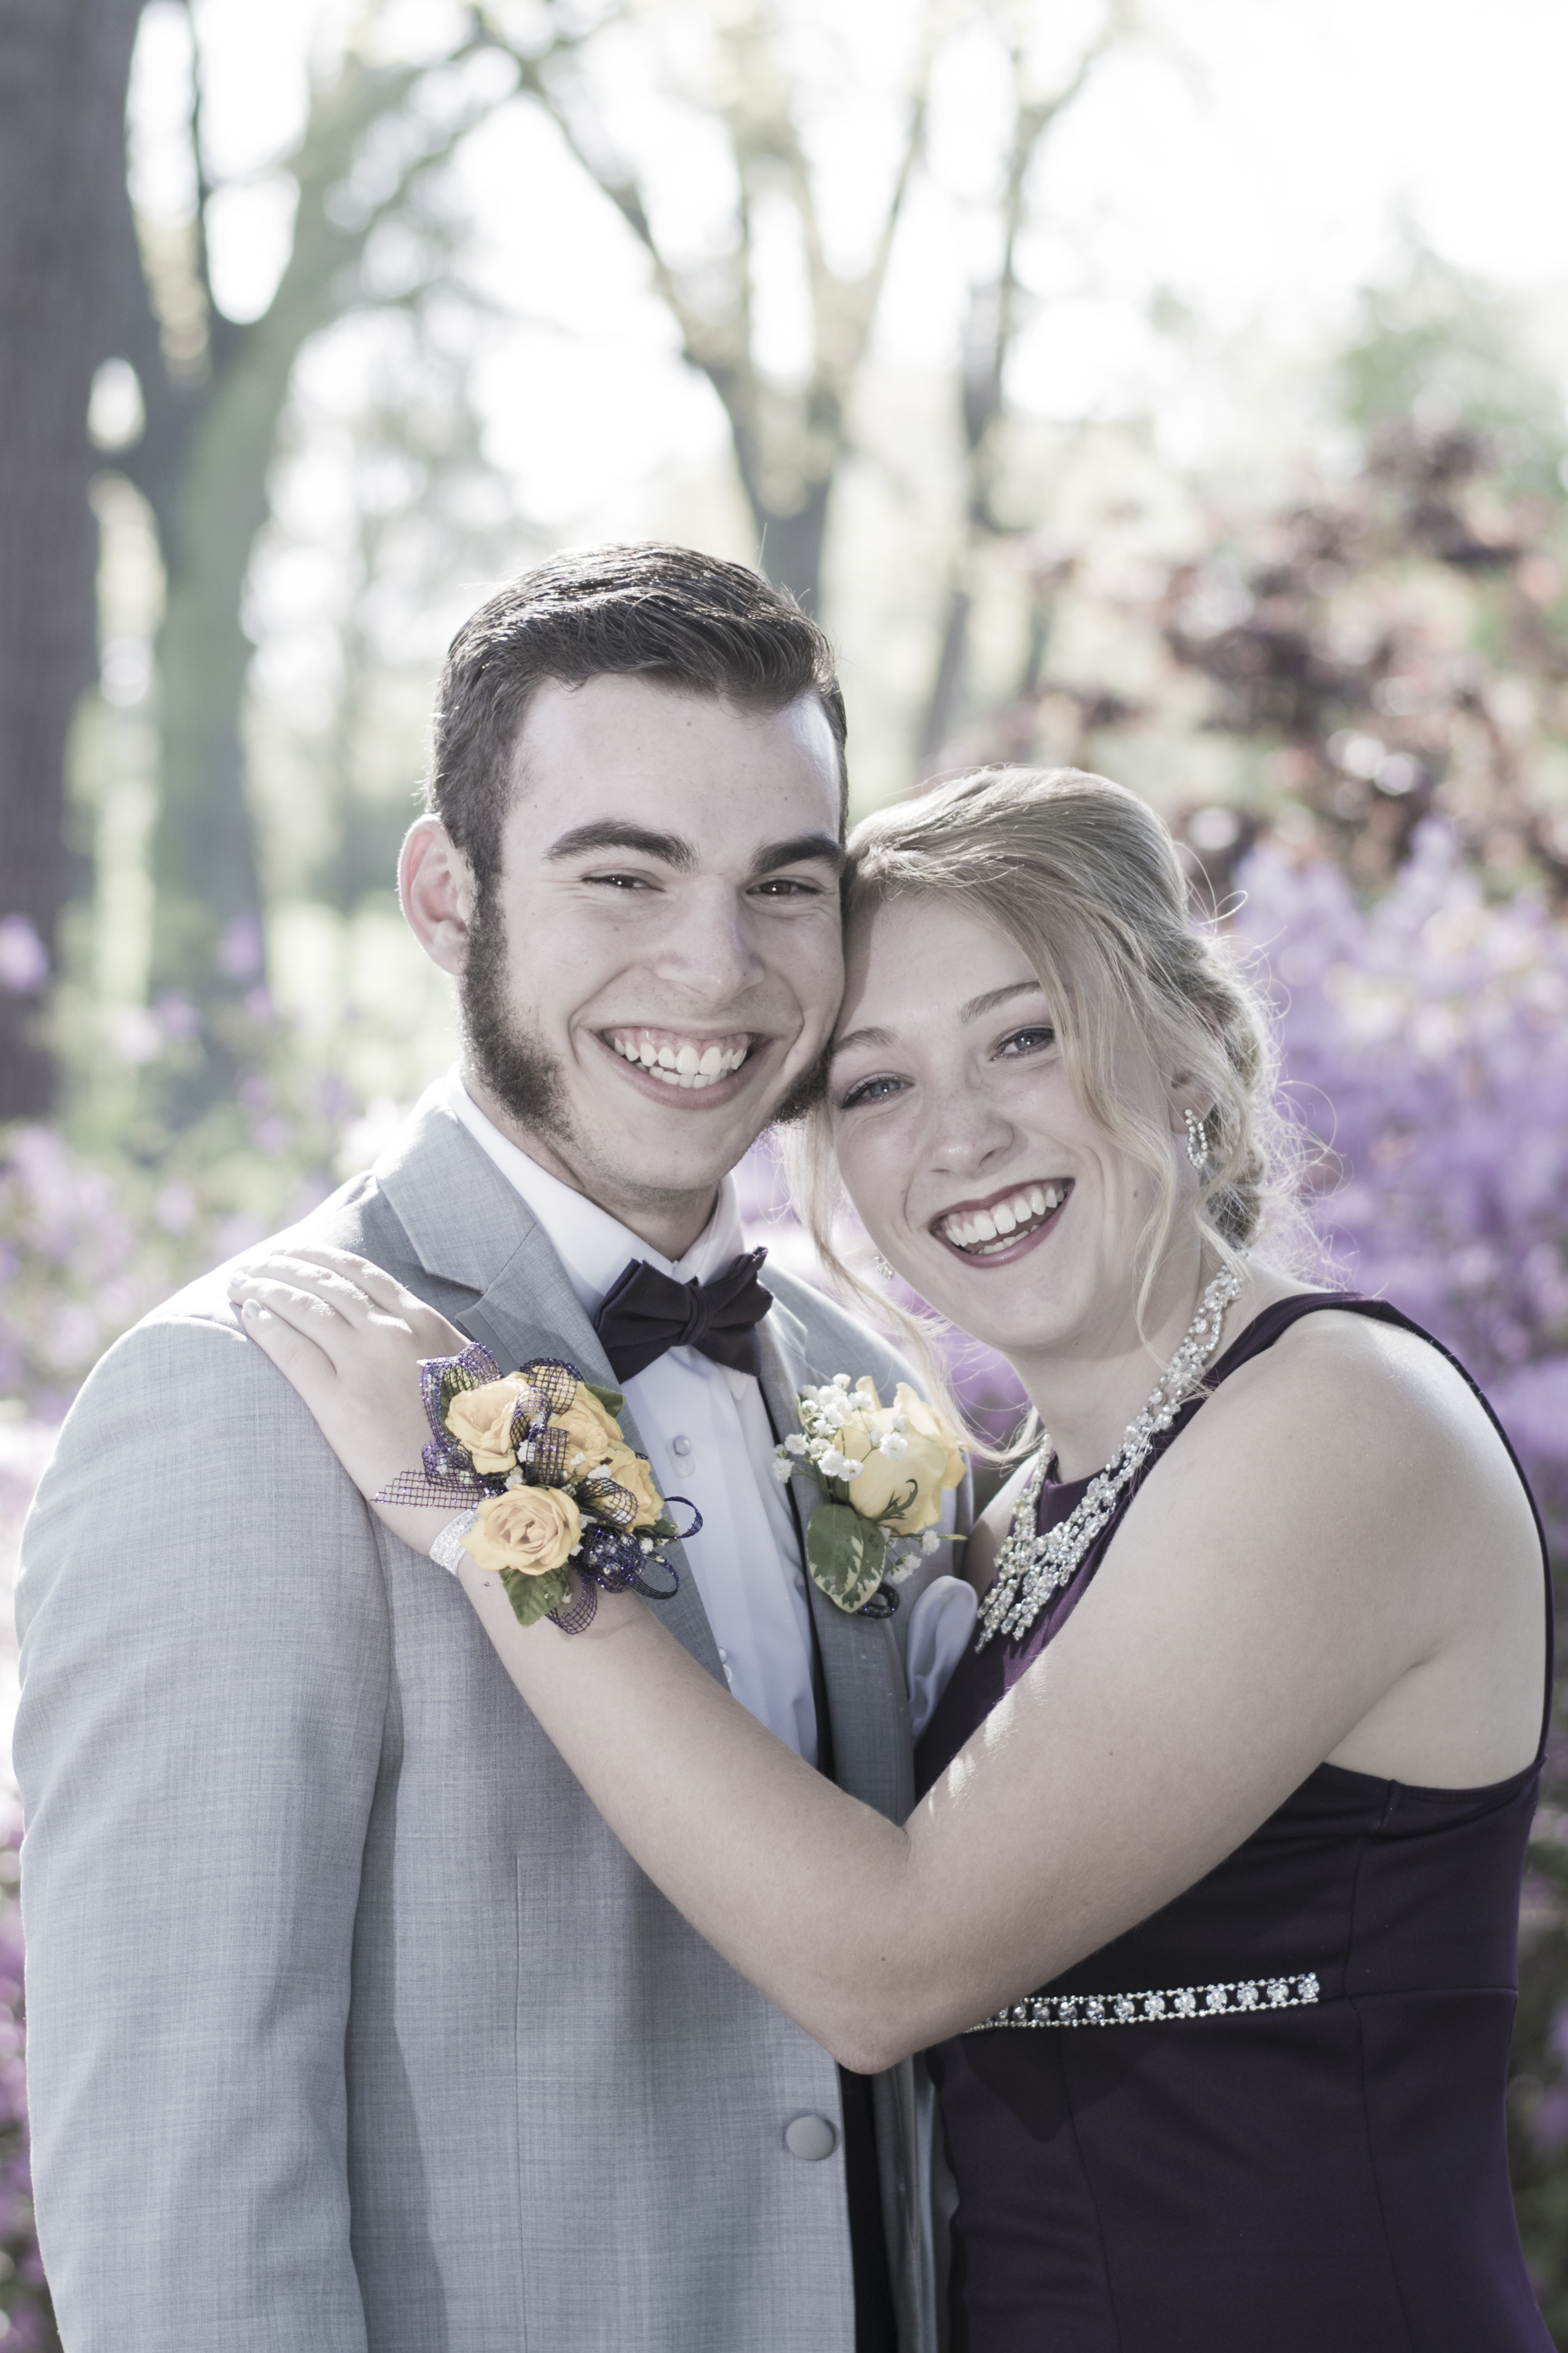 ethan-and-ally-prom-79-of-113_41889449732_o.jpg